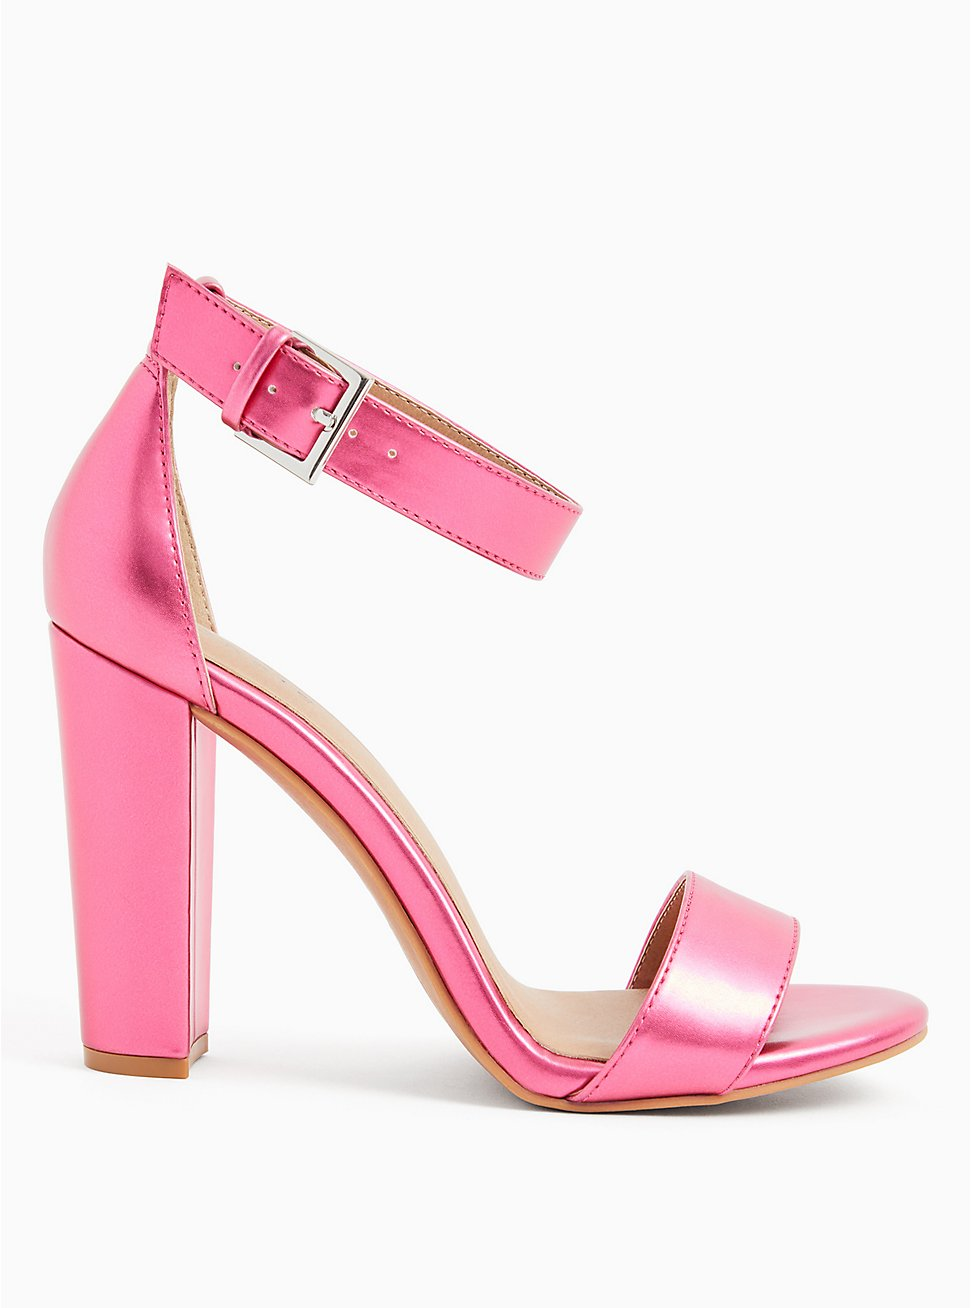 Staci - Metallic Pink Faux Leather Ankle Strap Tapered Heel (WW), PINK, hi-res